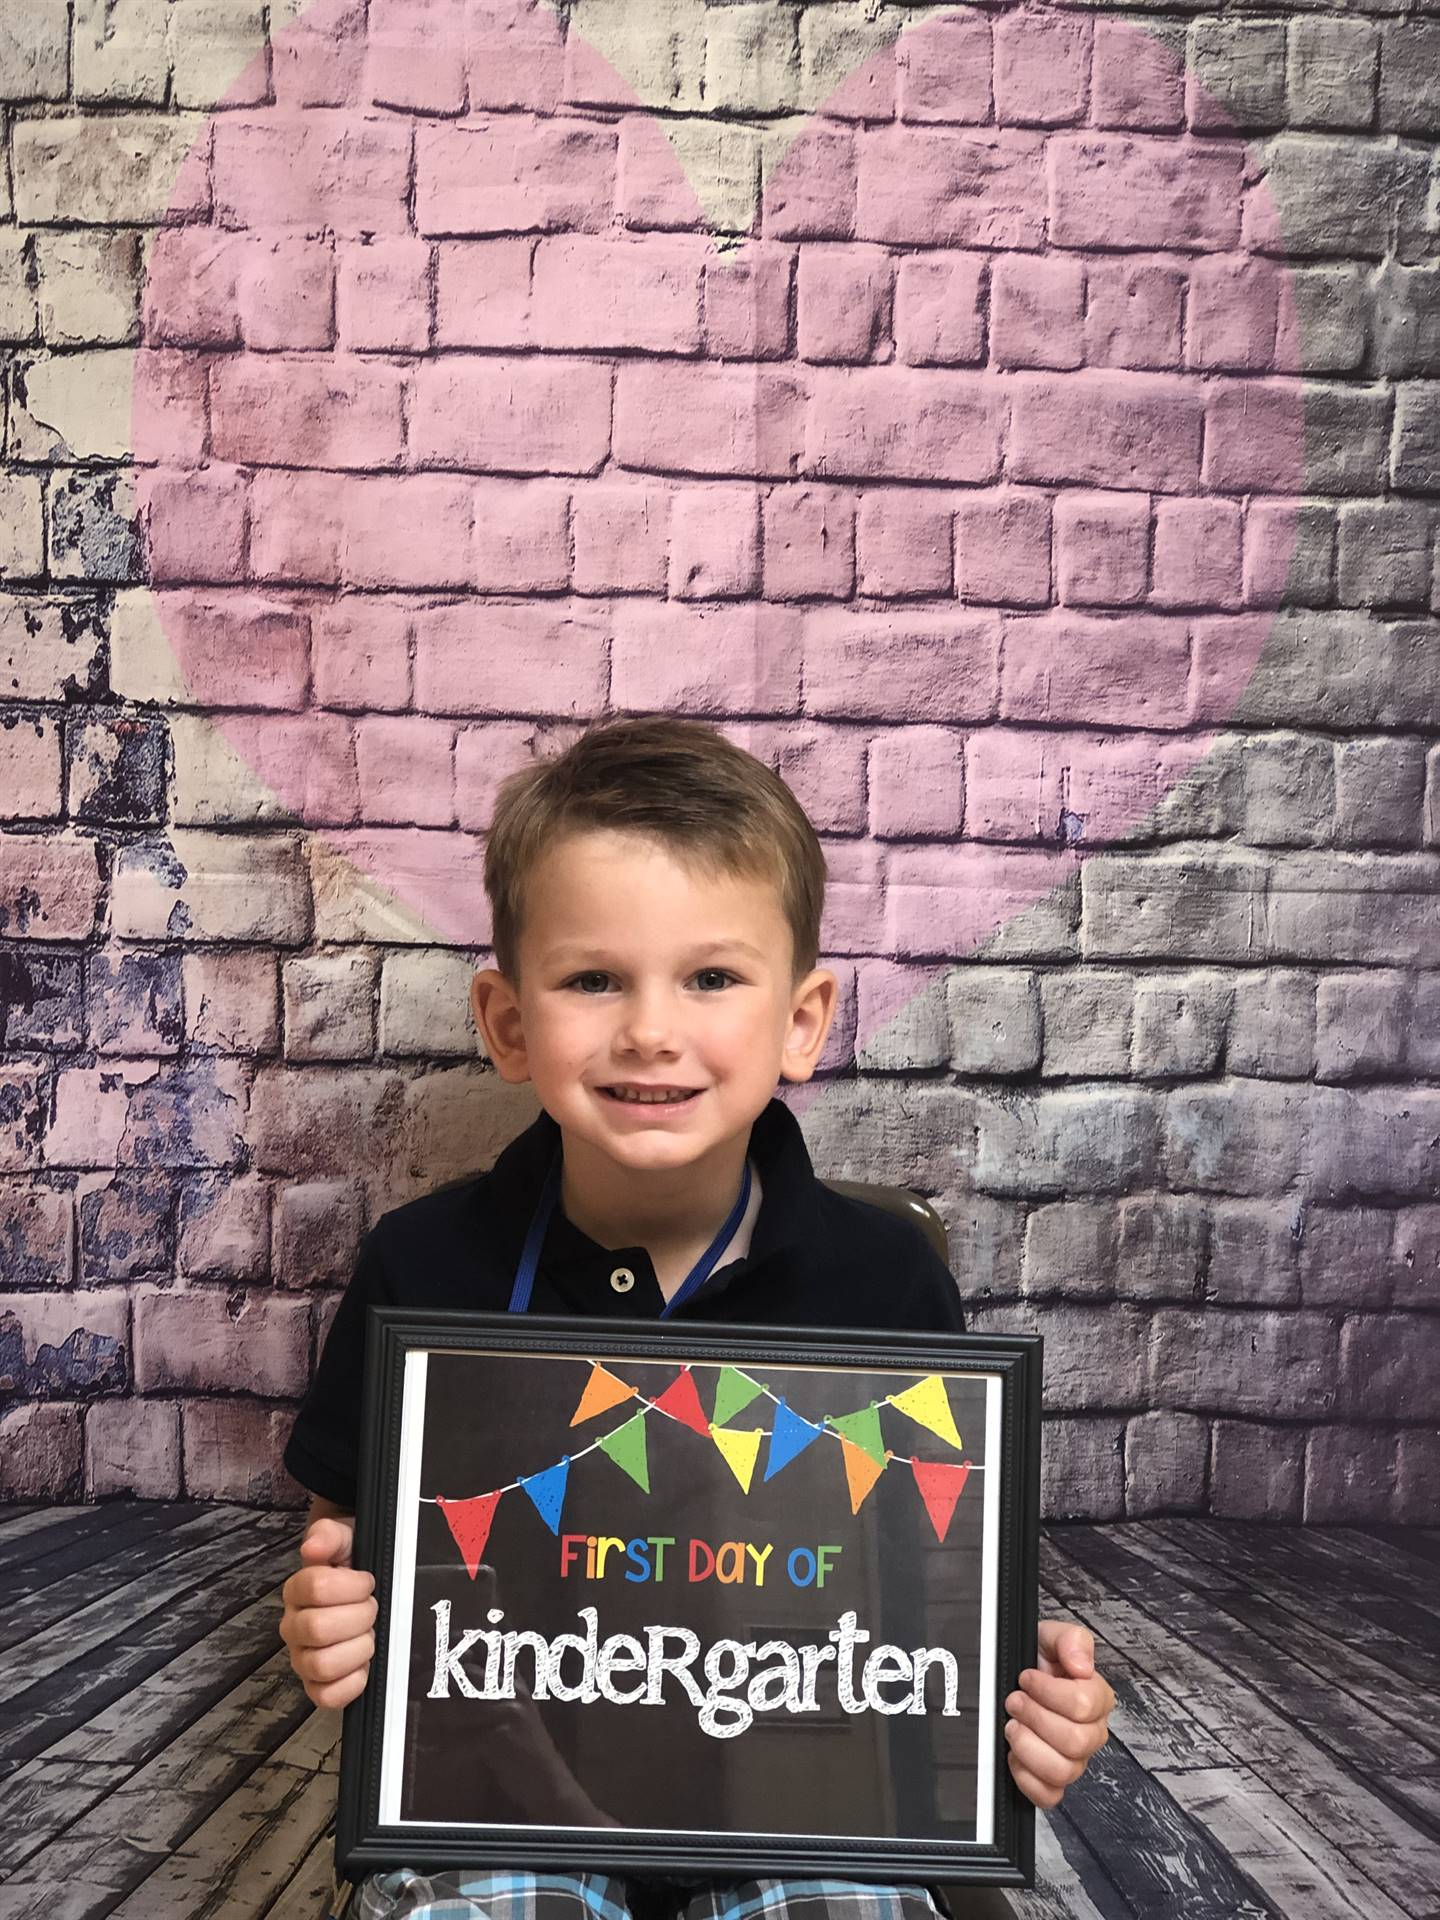 First Day of Kindergarten!